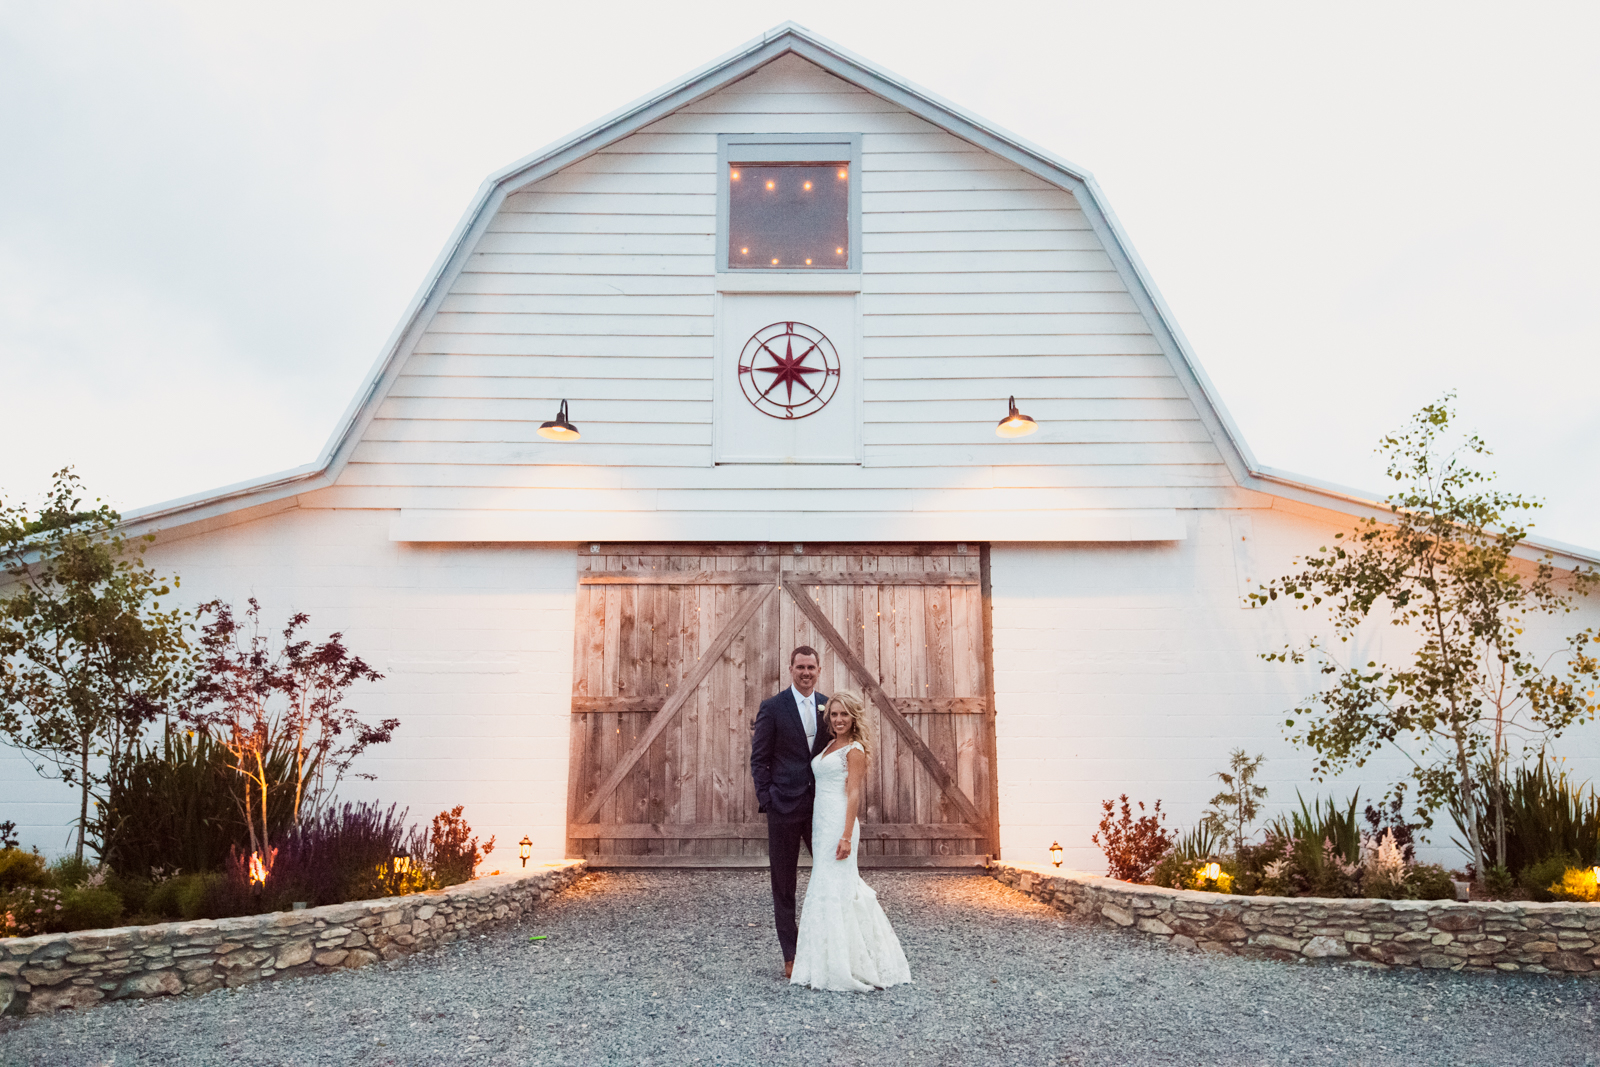 Poetry-&-Motion-High-Country-Wedding-Photography-Overlook-Barn (28 of 35).jpg